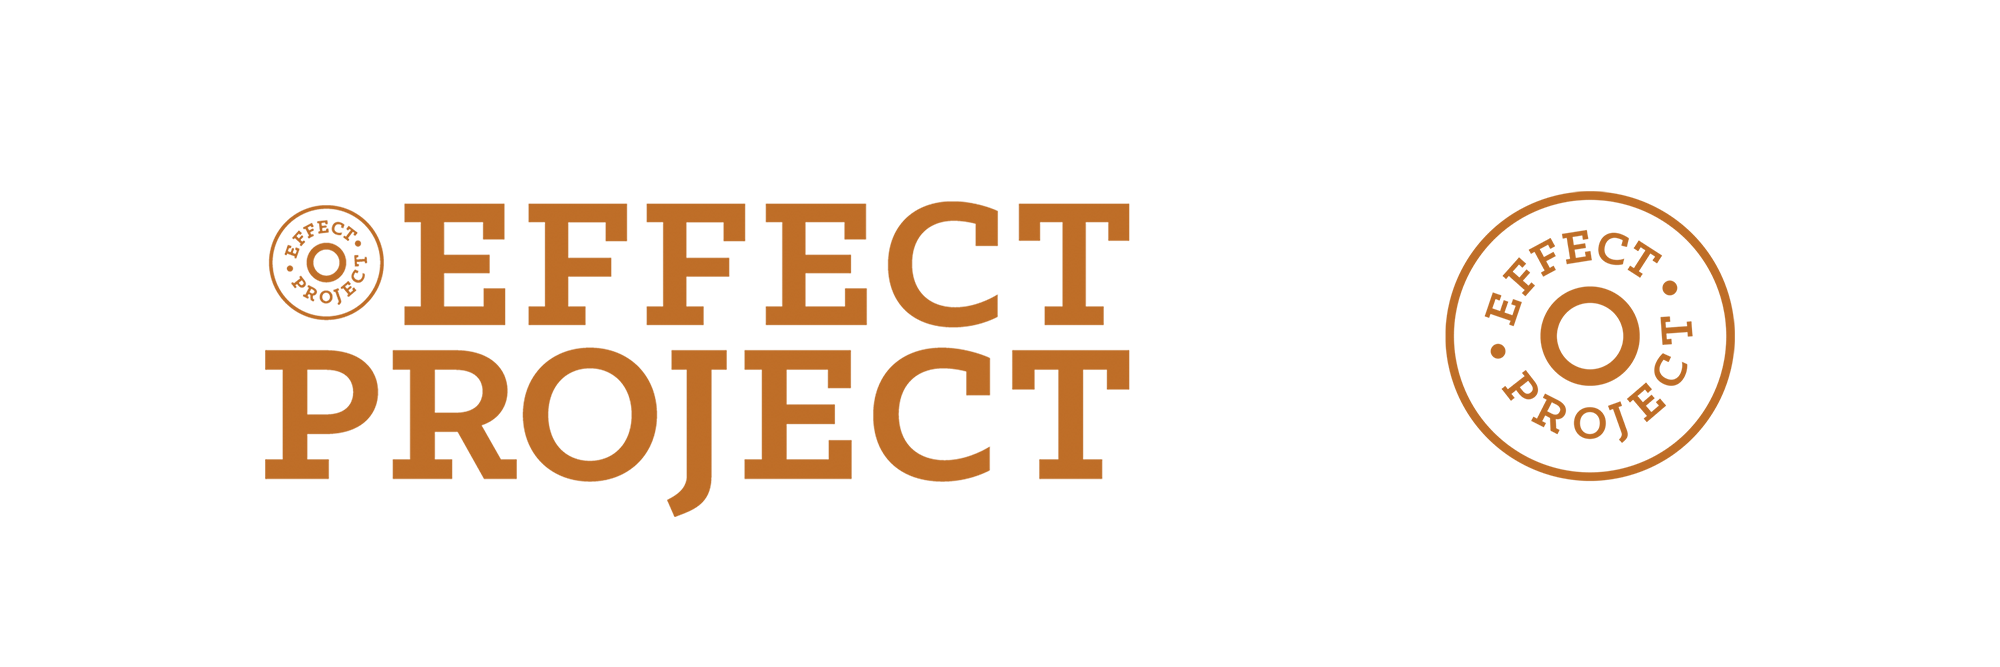 EFFECT Project brand identity logos by Martin Sully. Based in Auckland, New Zealand, and Newcastle, NSW, Australia.